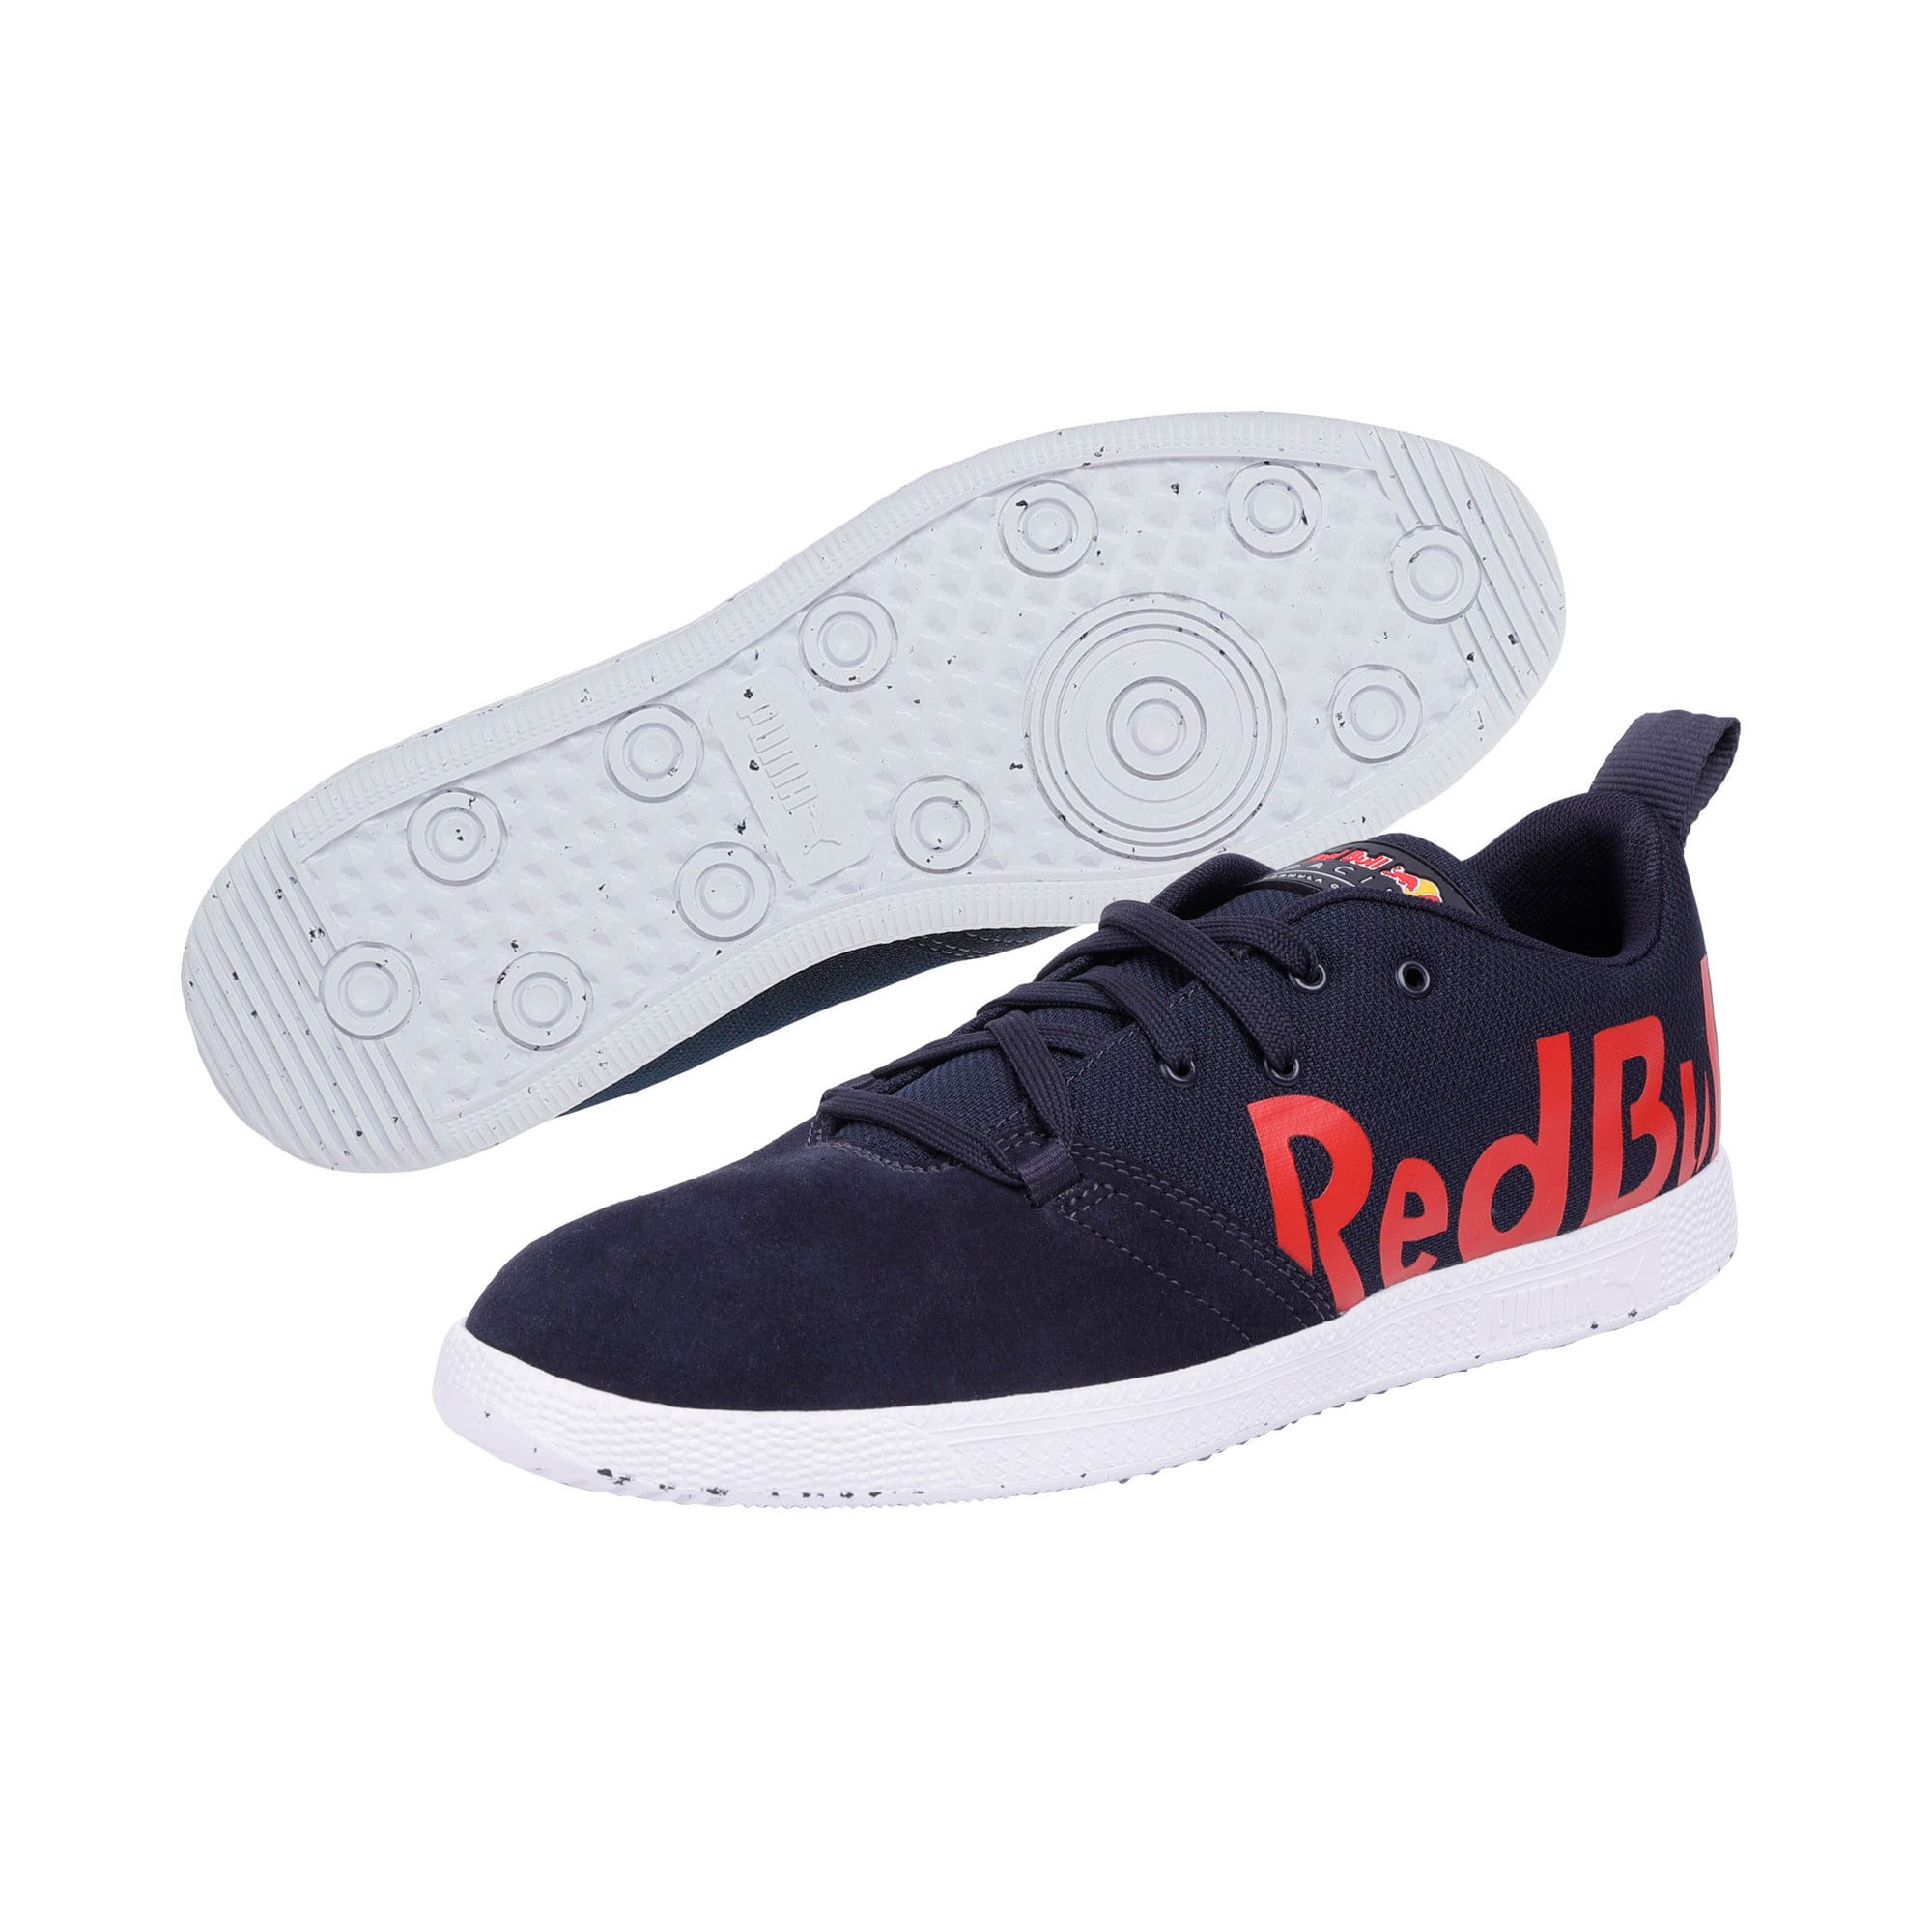 Thumbnail 2 of Red Bull Racing Cups Lo Trainers, NIGHT SKY-White-Chinese Red, medium-IND